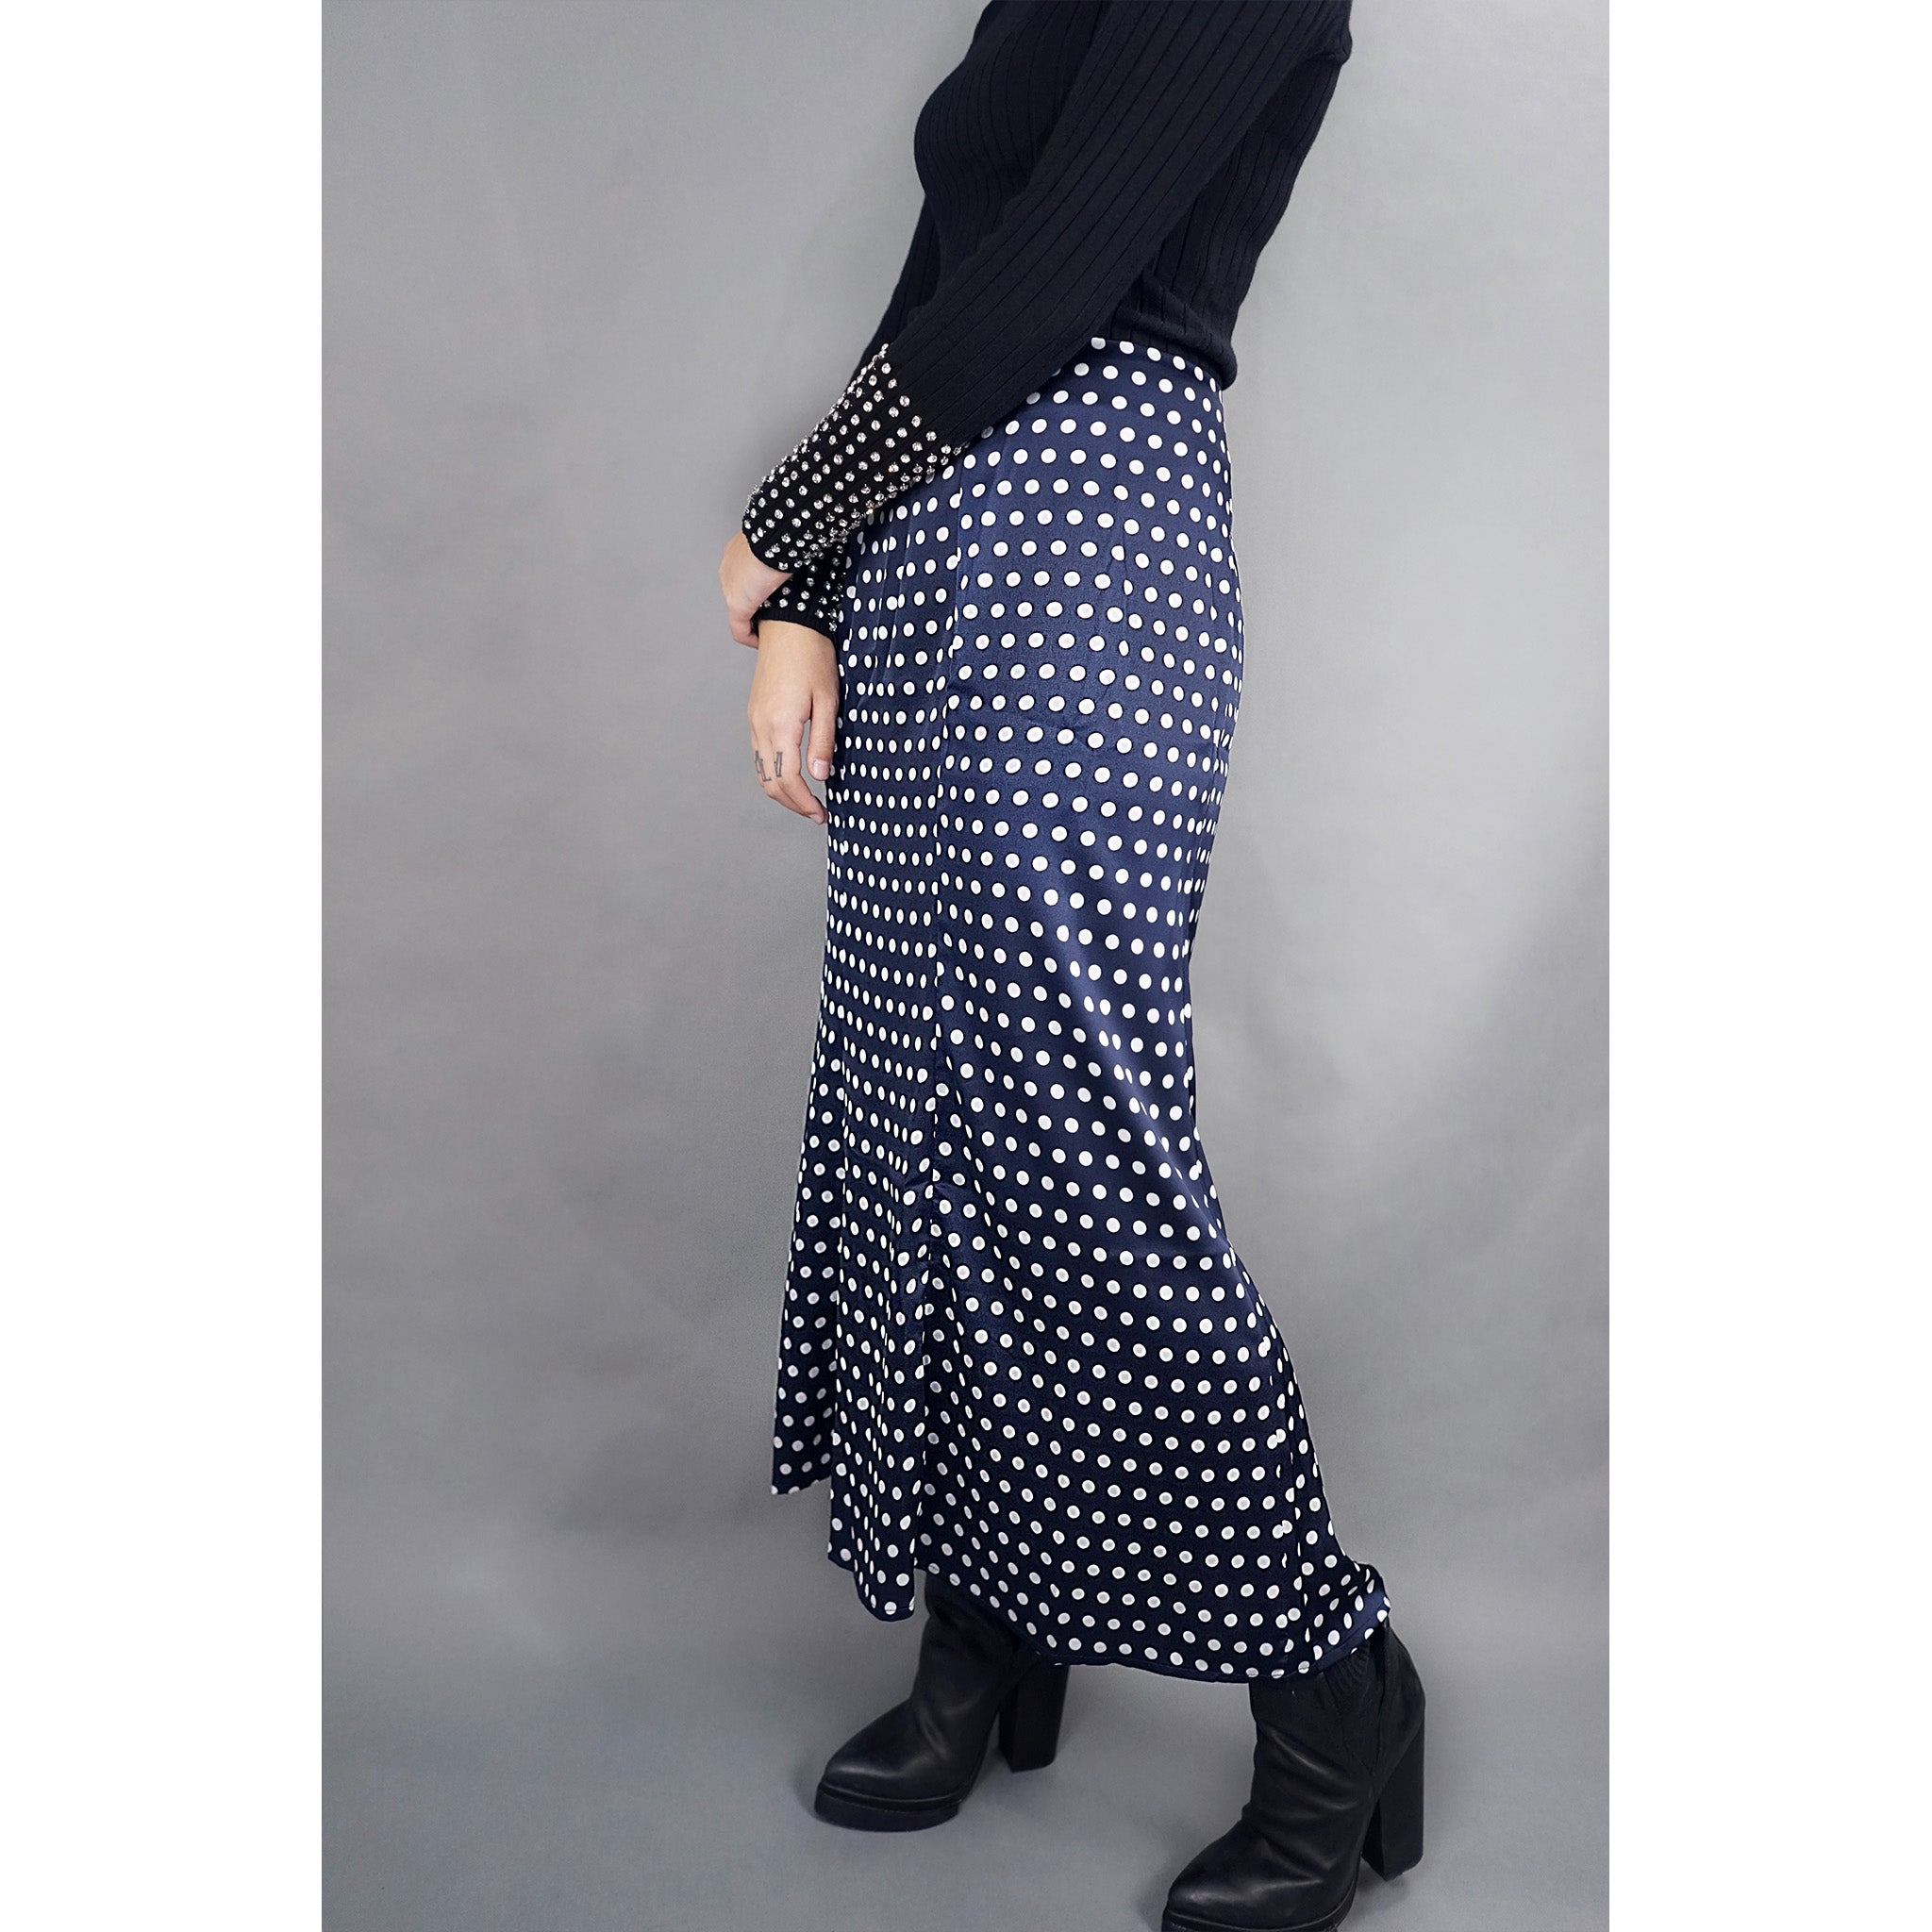 Dots of Luck Polka Dot Skirt